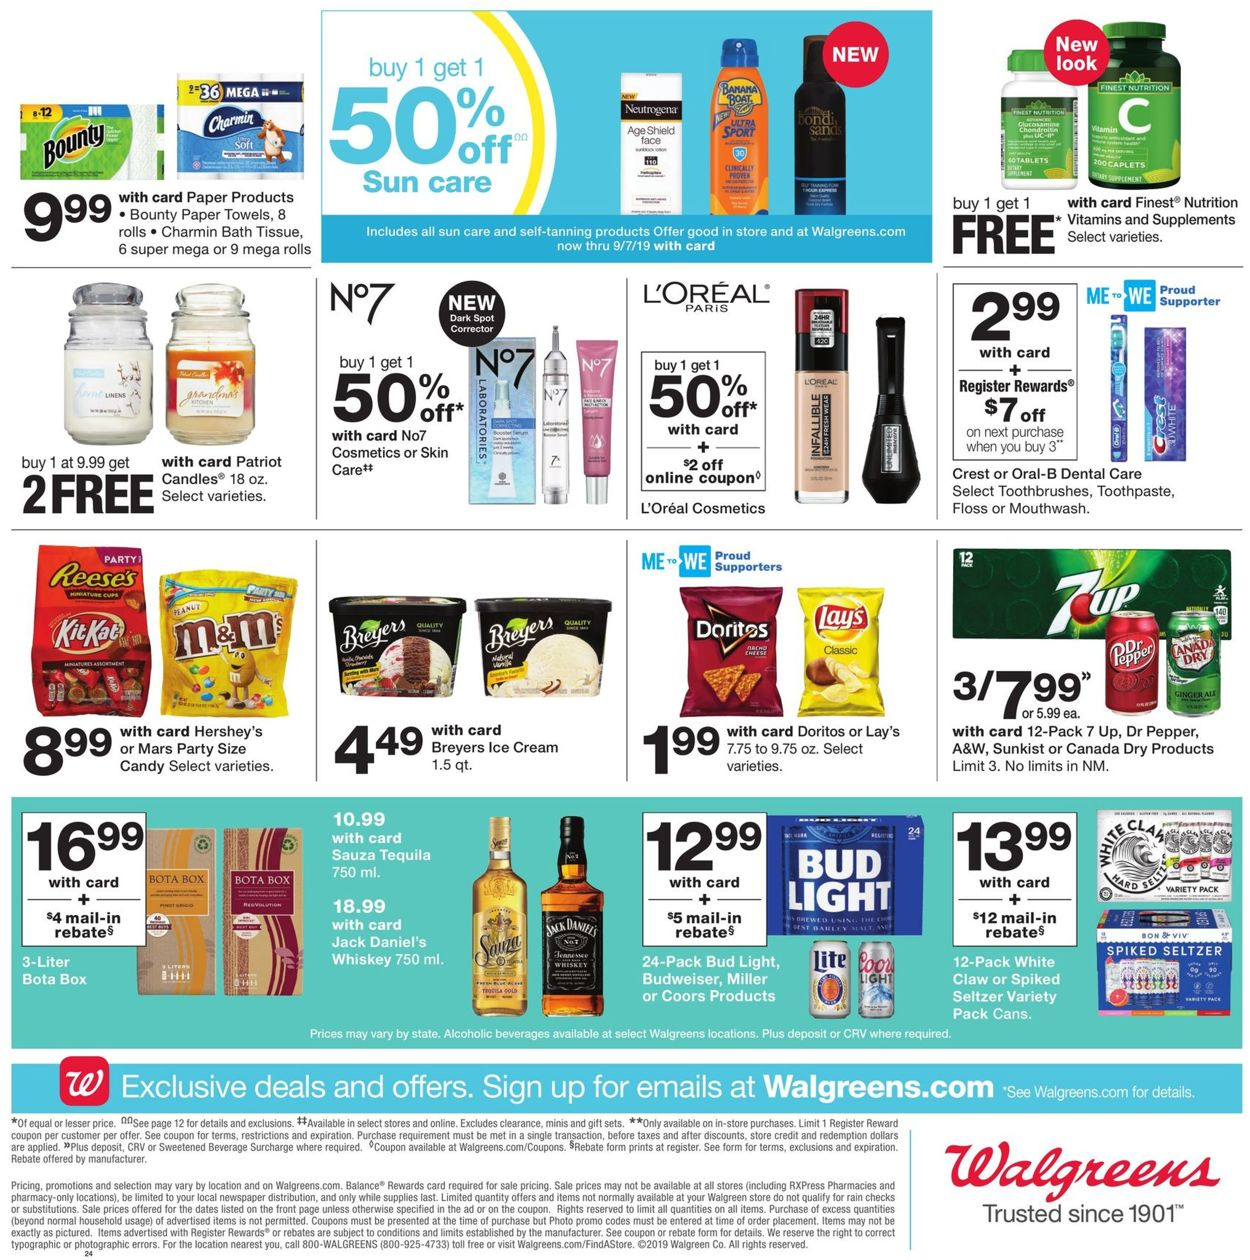 Walgreens Current weekly ad 08/11 - 08/17/2019 [3] - frequent-ads com